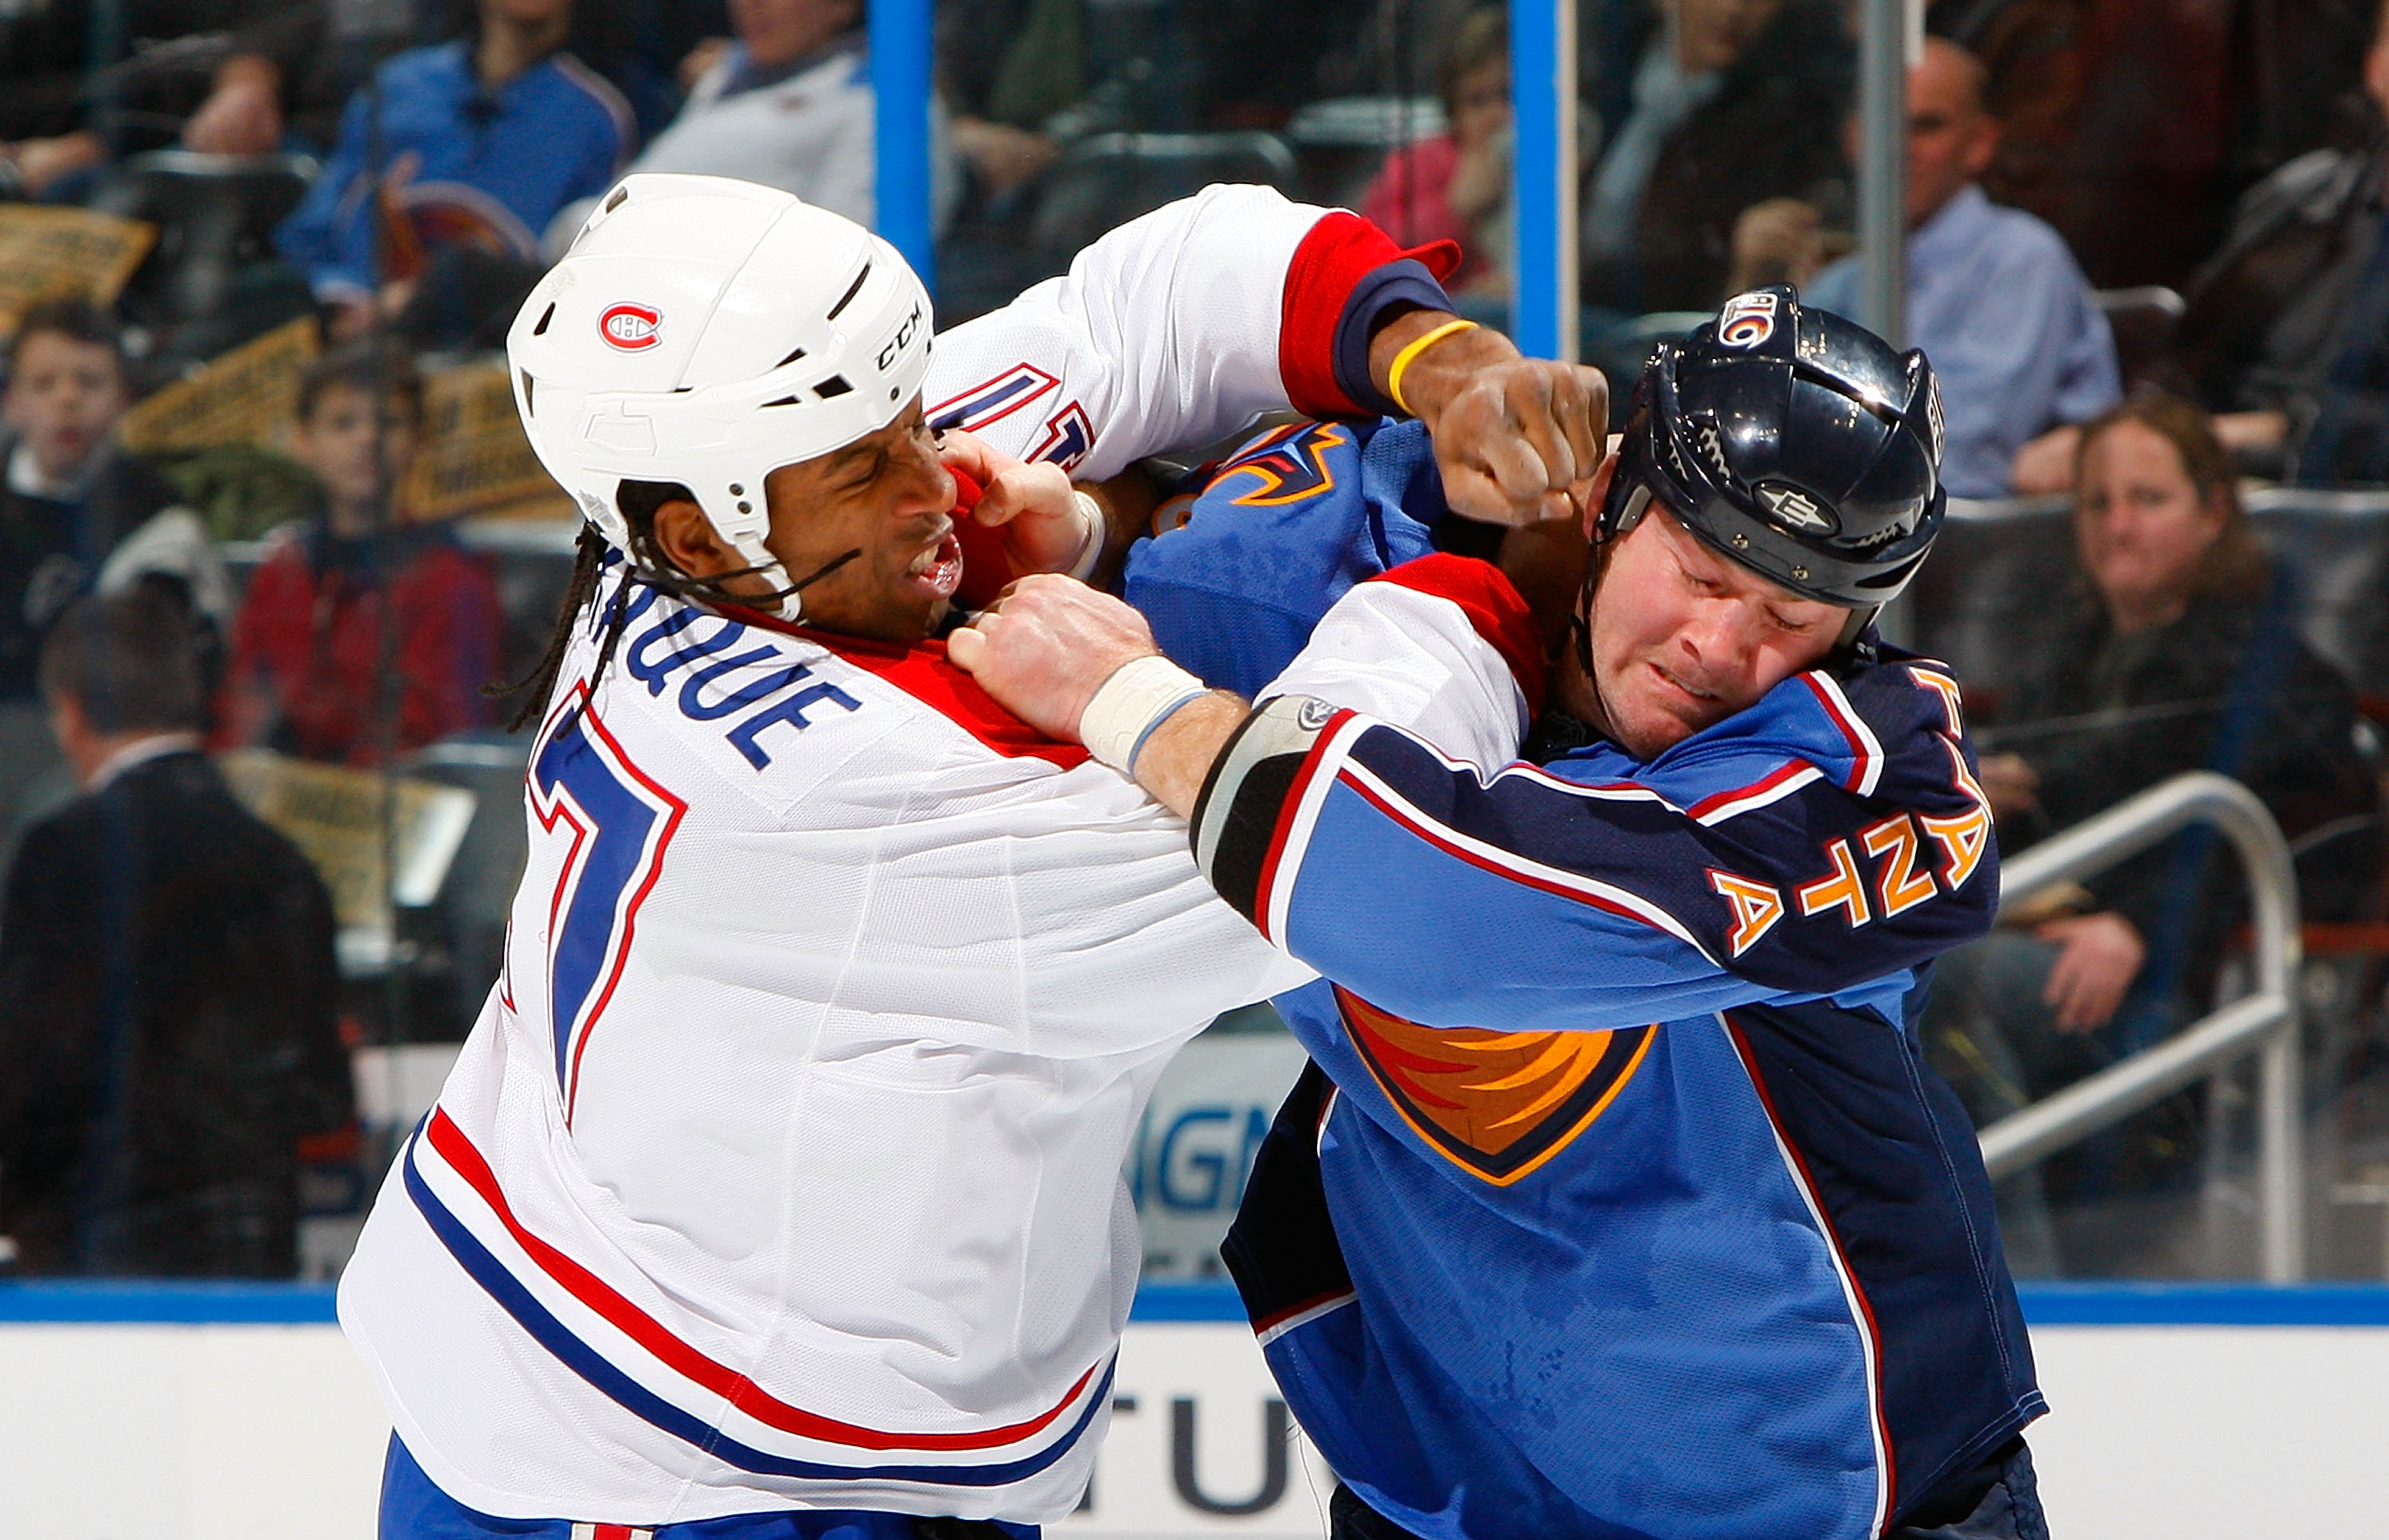 ATLANTA - DECEMBER 12:  Georges Laraque #17 of the Montreal Canadiens fights with Eric Boulton #36 of the Atlanta Thrashers at Philips Arena on December 12, 2009 in Atlanta, Georgia.  (Photo by Kevin C. Cox/Getty Images)